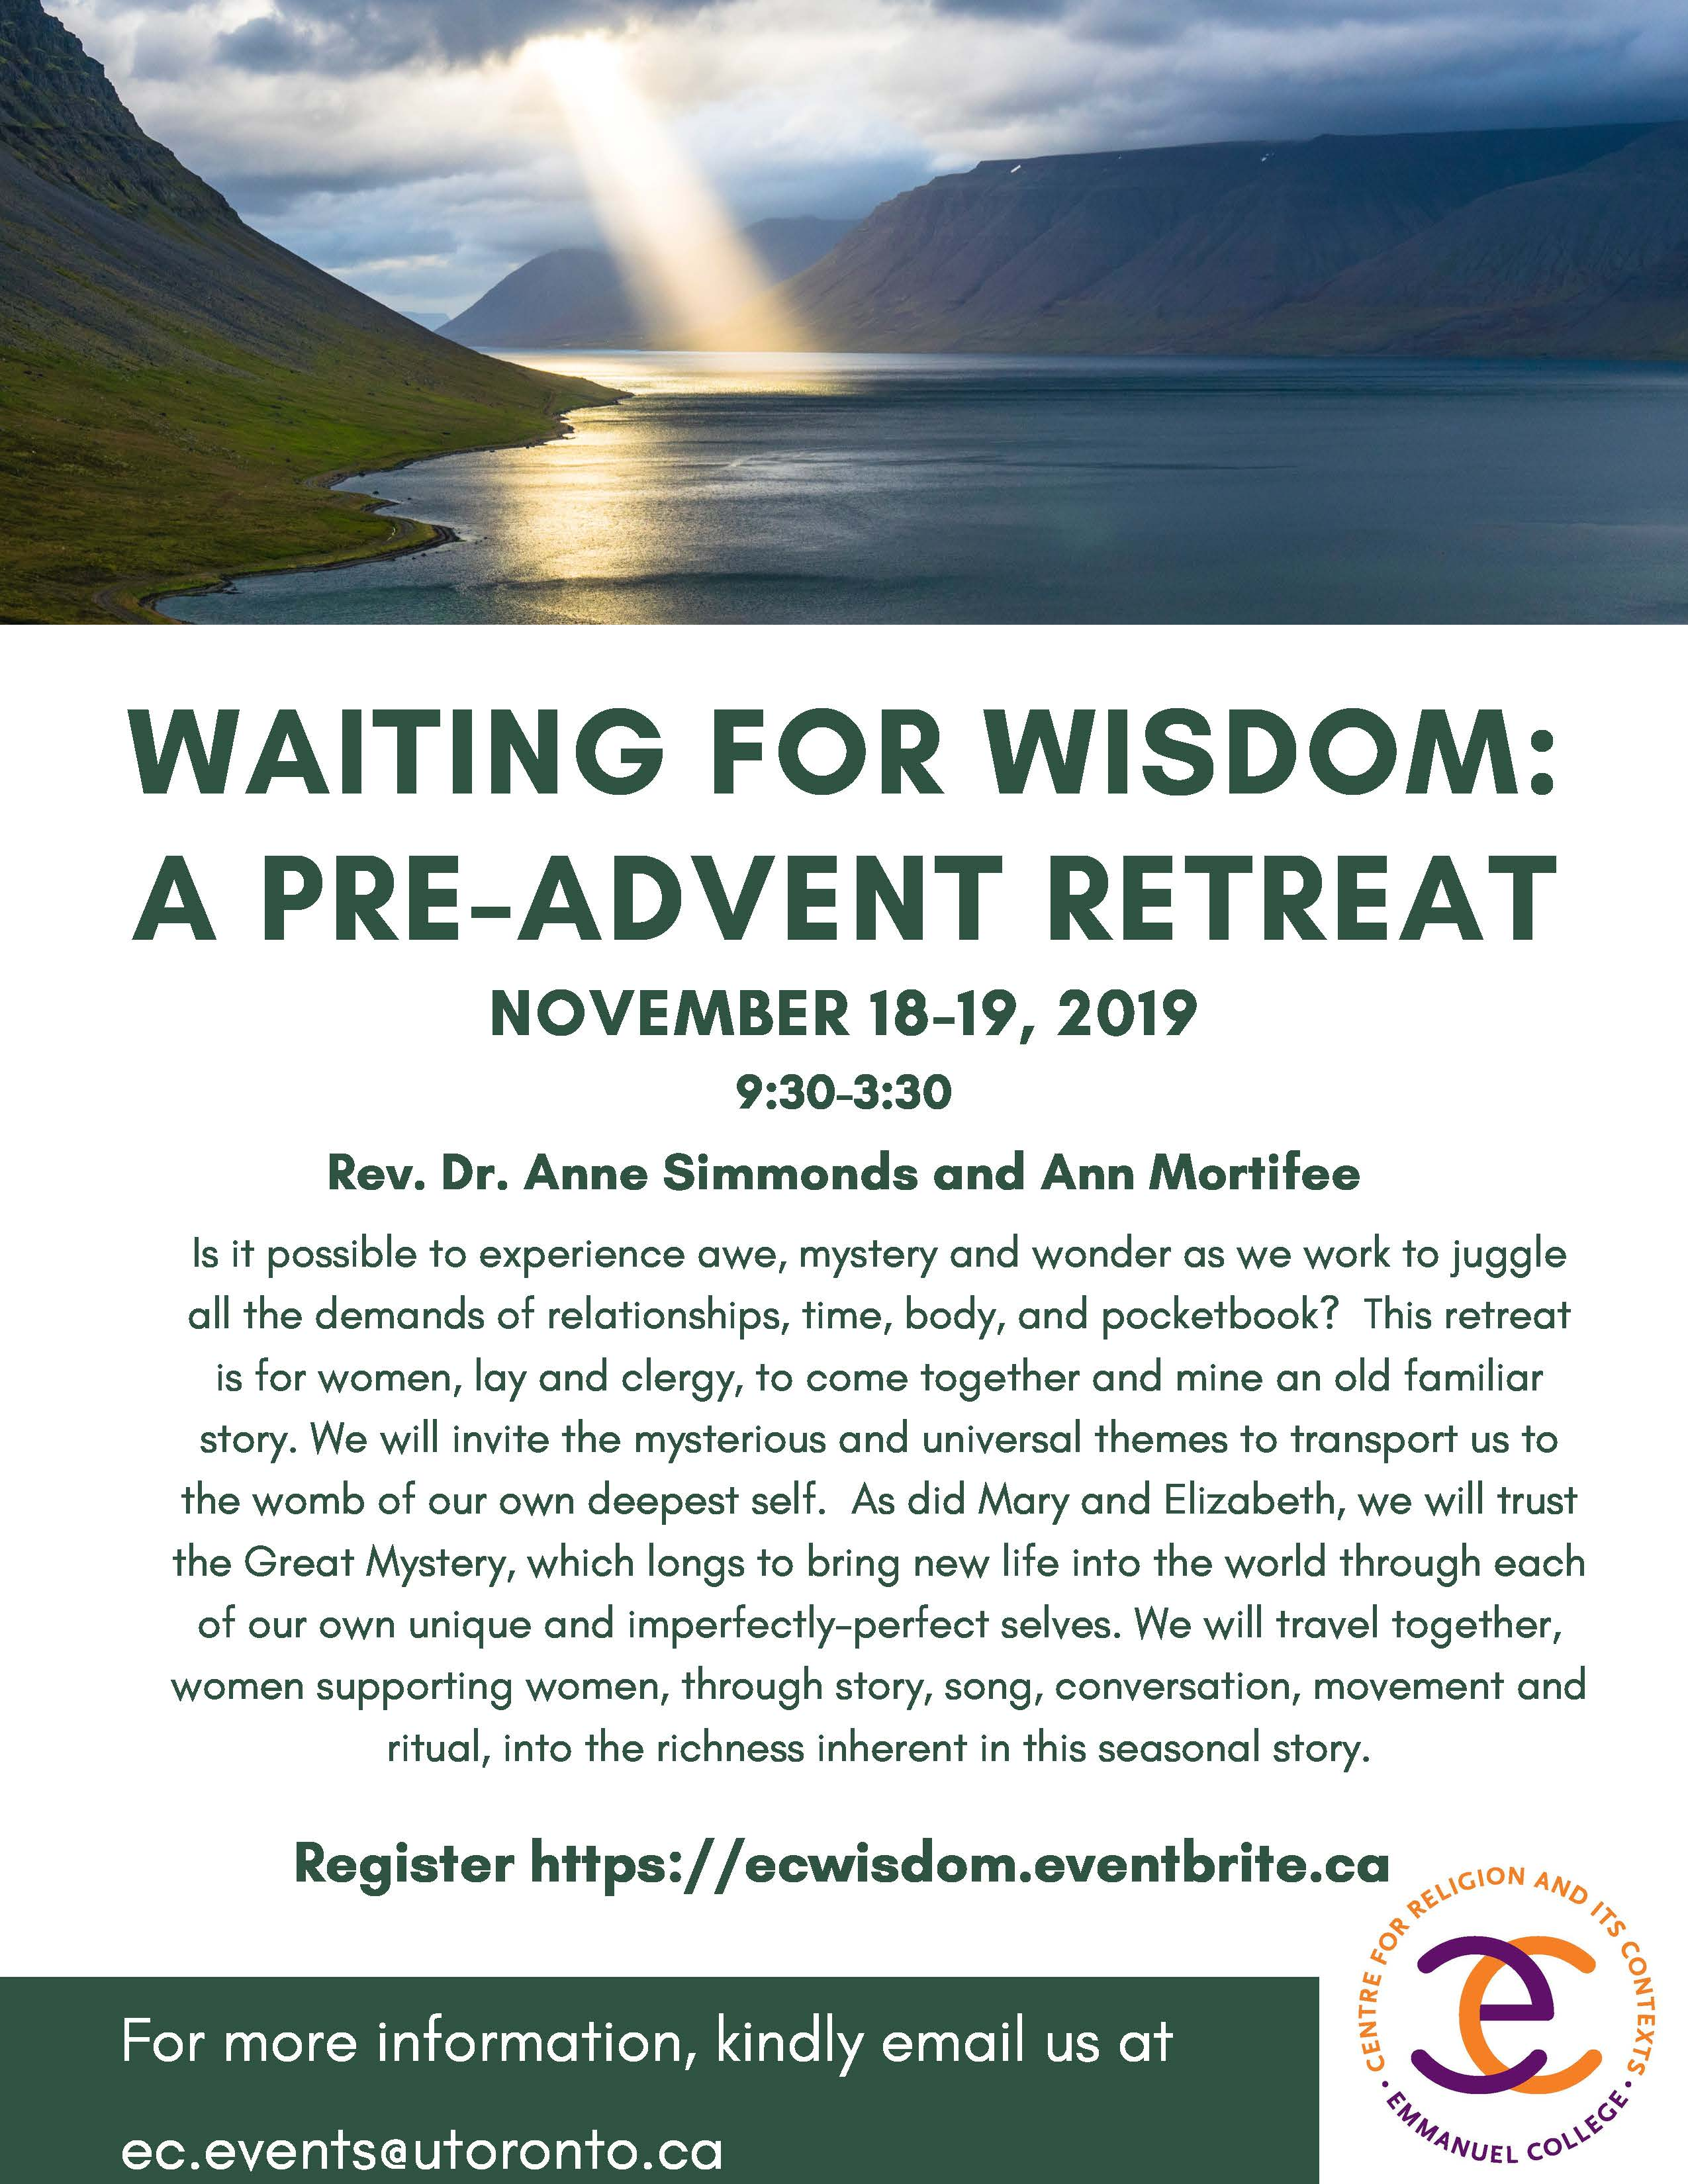 Waiting for Wisdom: A Two-Day Pre-Advent Retreat